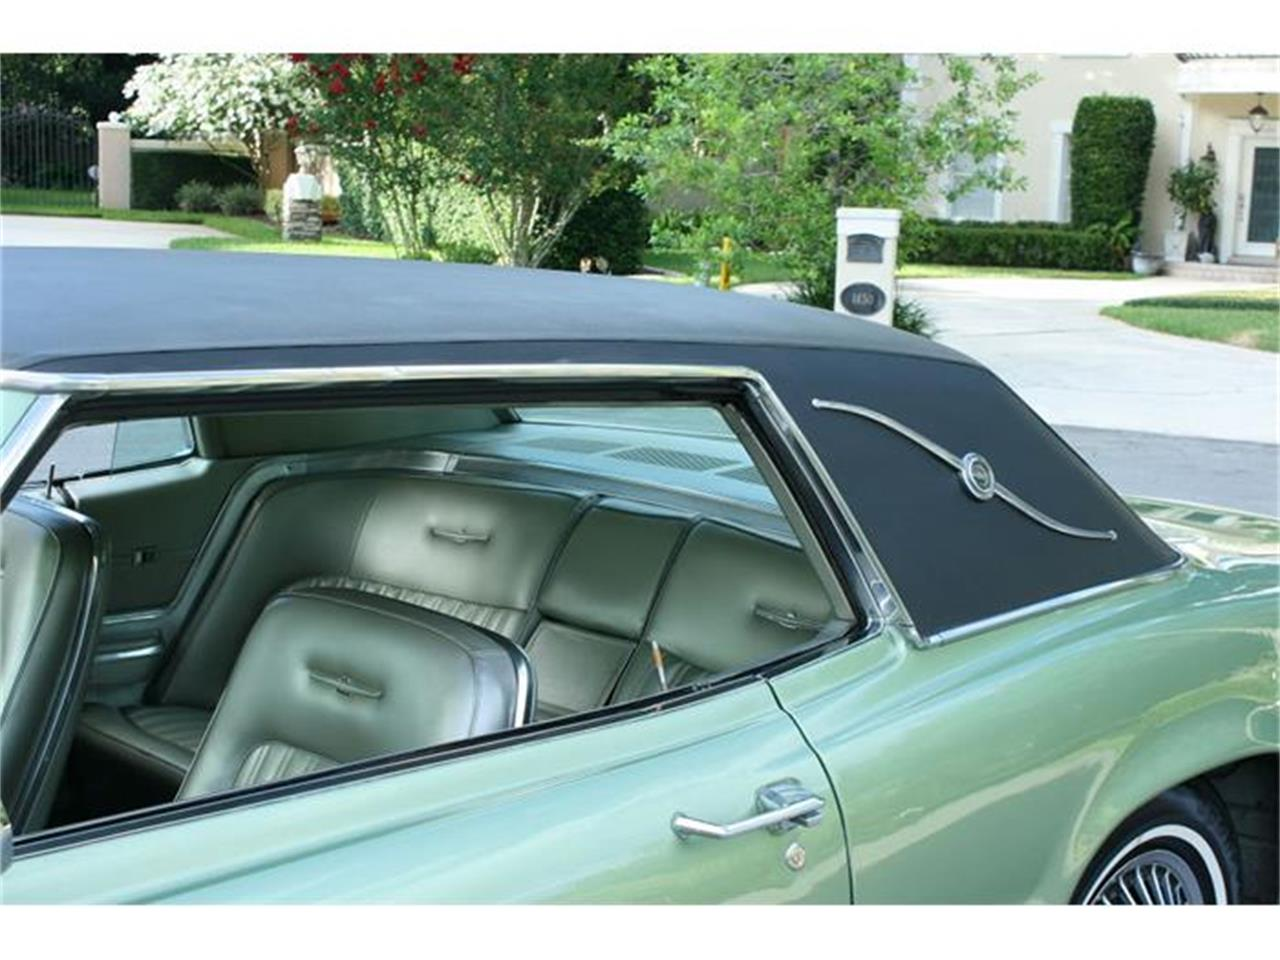 Large Picture of 1967 Ford Thunderbird located in Lakeland Florida - $18,500.00 Offered by MJC Classic Cars - ITN1